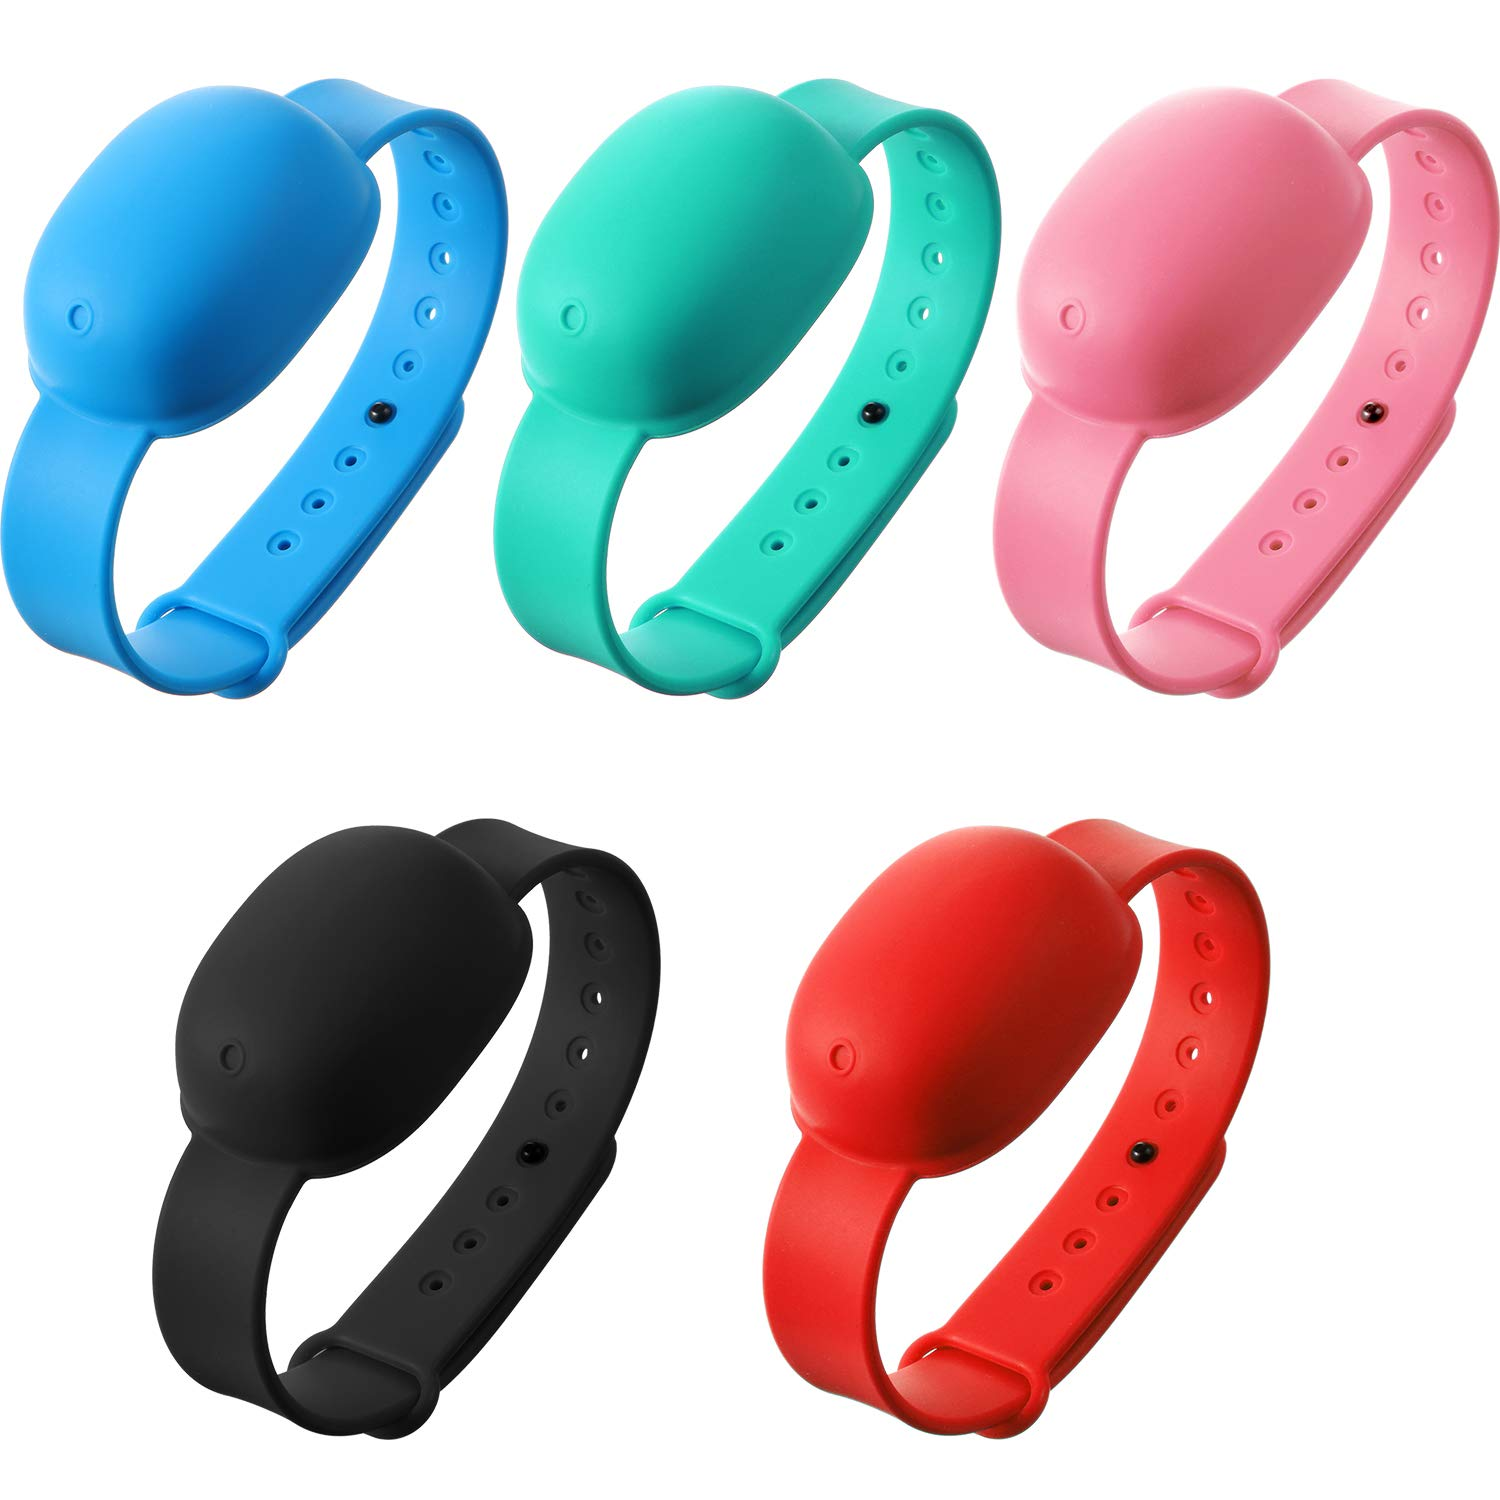 10 Pieces Refillable Silicone Hand Liquid Wristband Portable Adjustable Wearable Dispenser Pumps Wristband Holder Liquid Wearable Bracelet for Lotion Wash Liquid for Adult and Kids